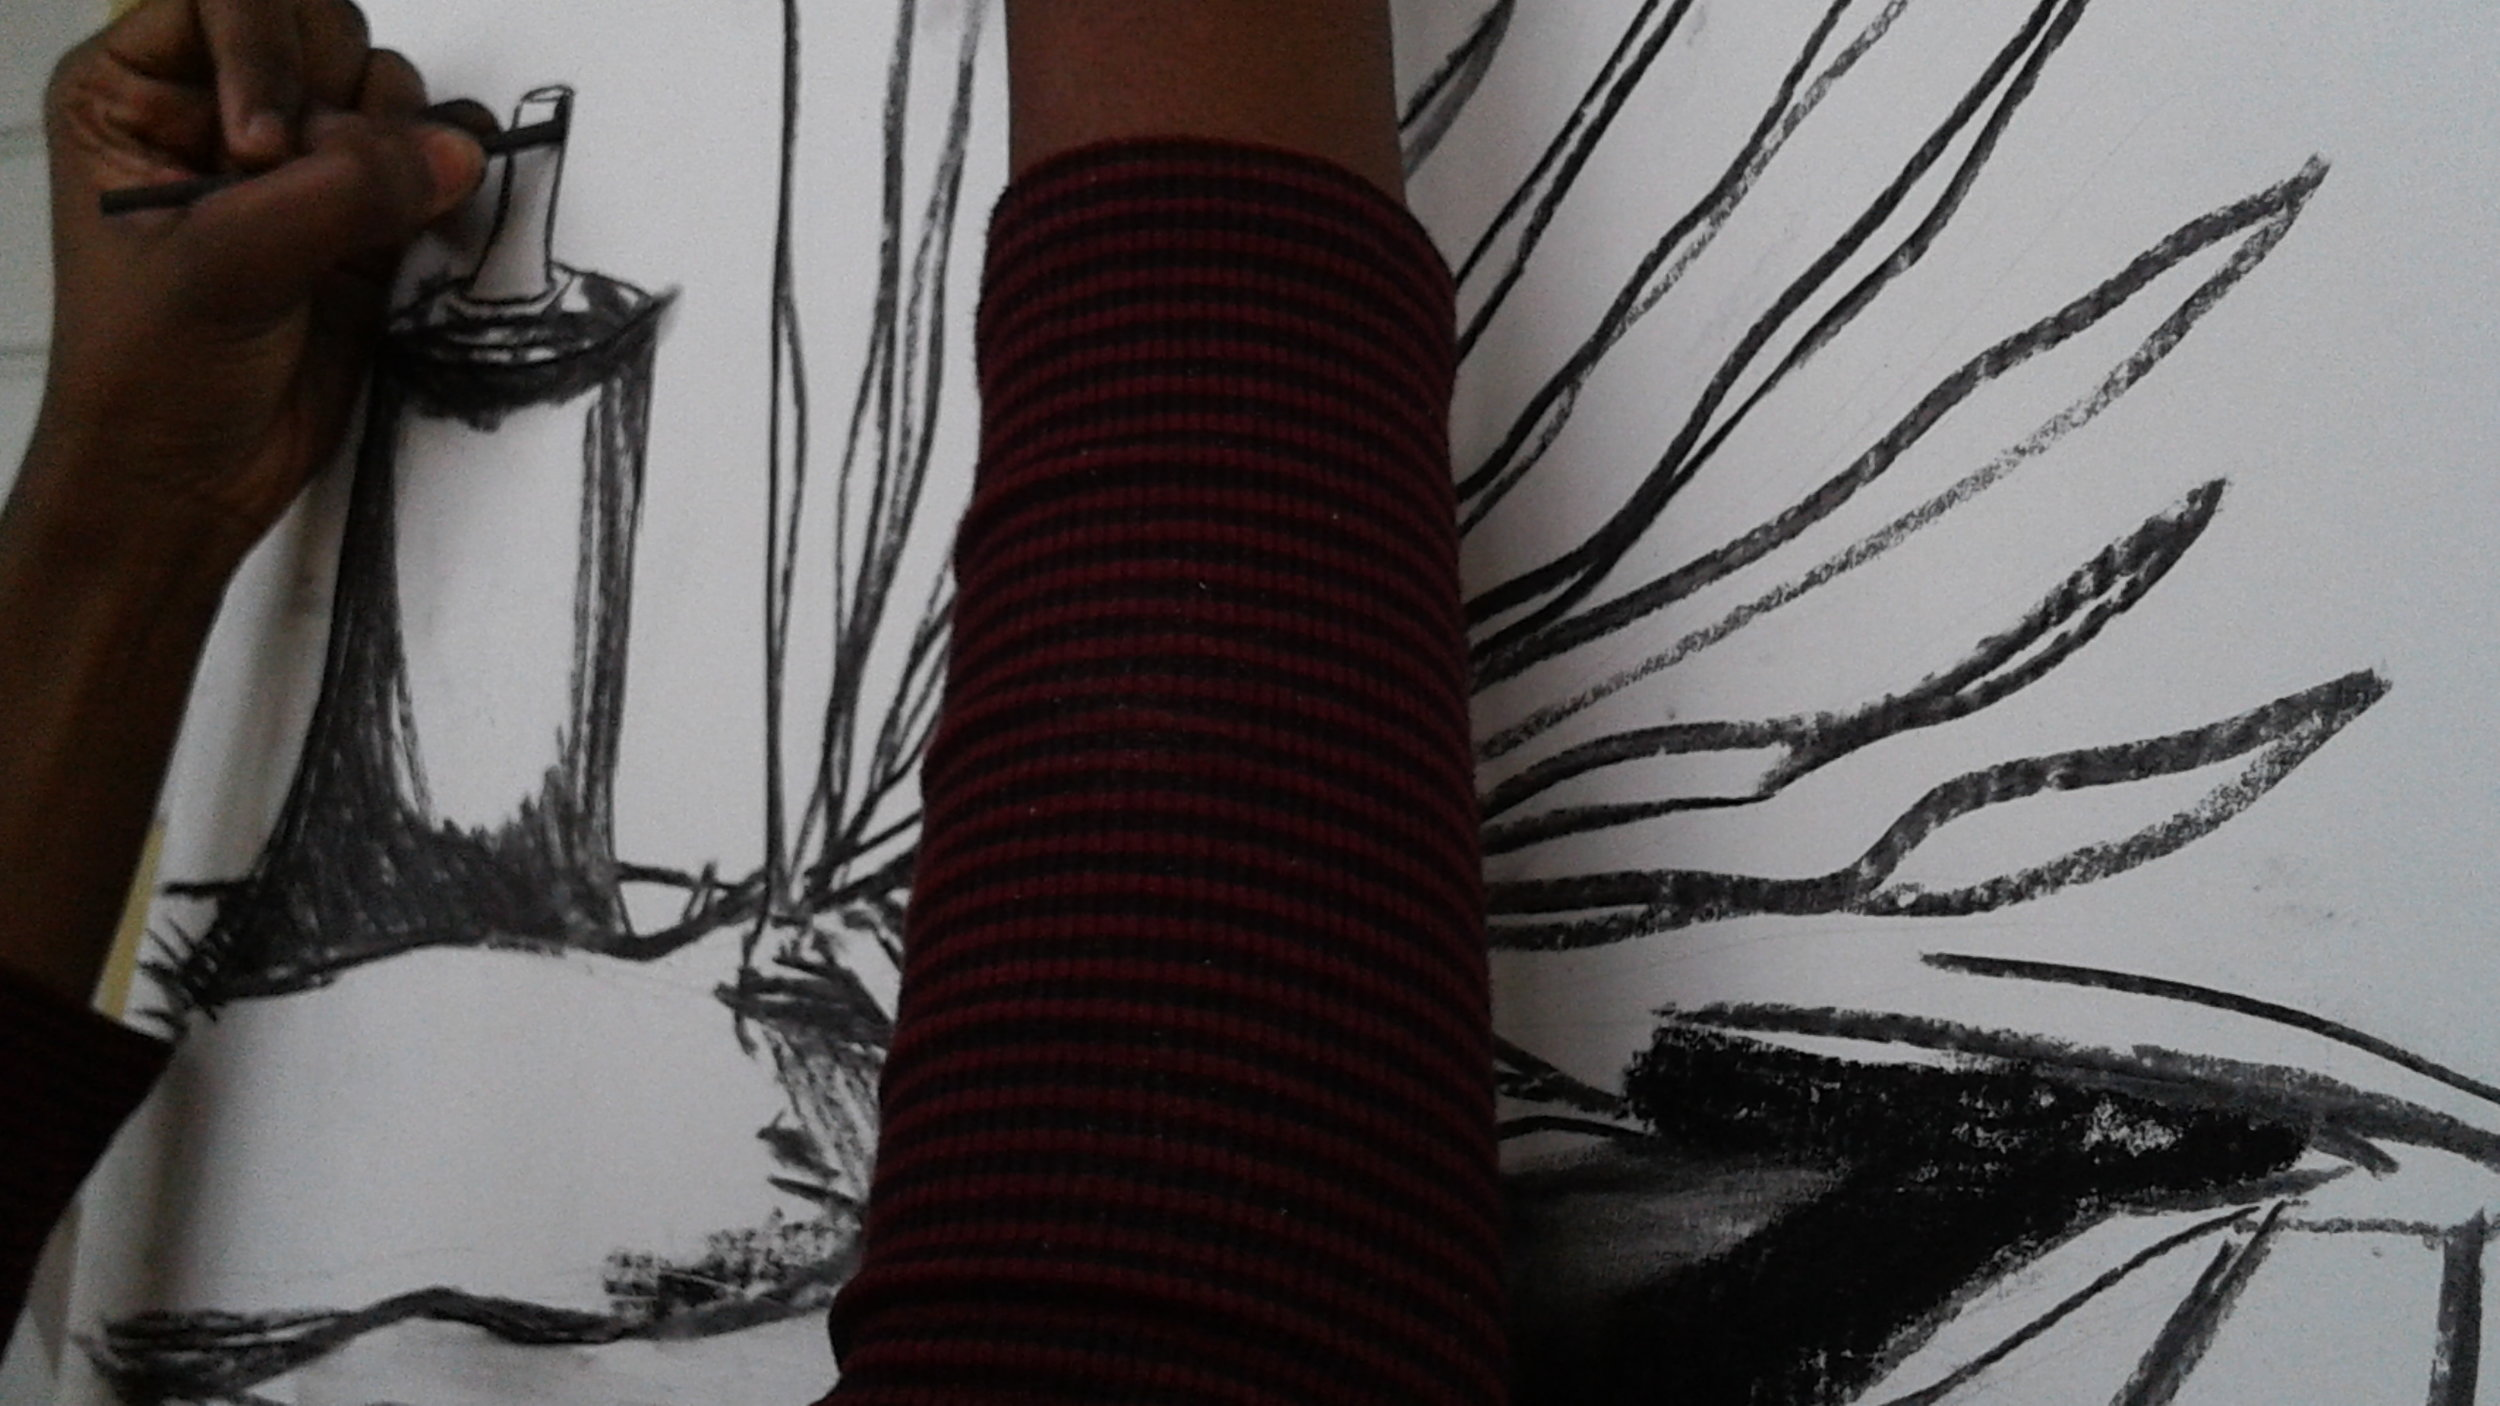 Observational drawing in progress (close up). All images courtesy of the NAGB